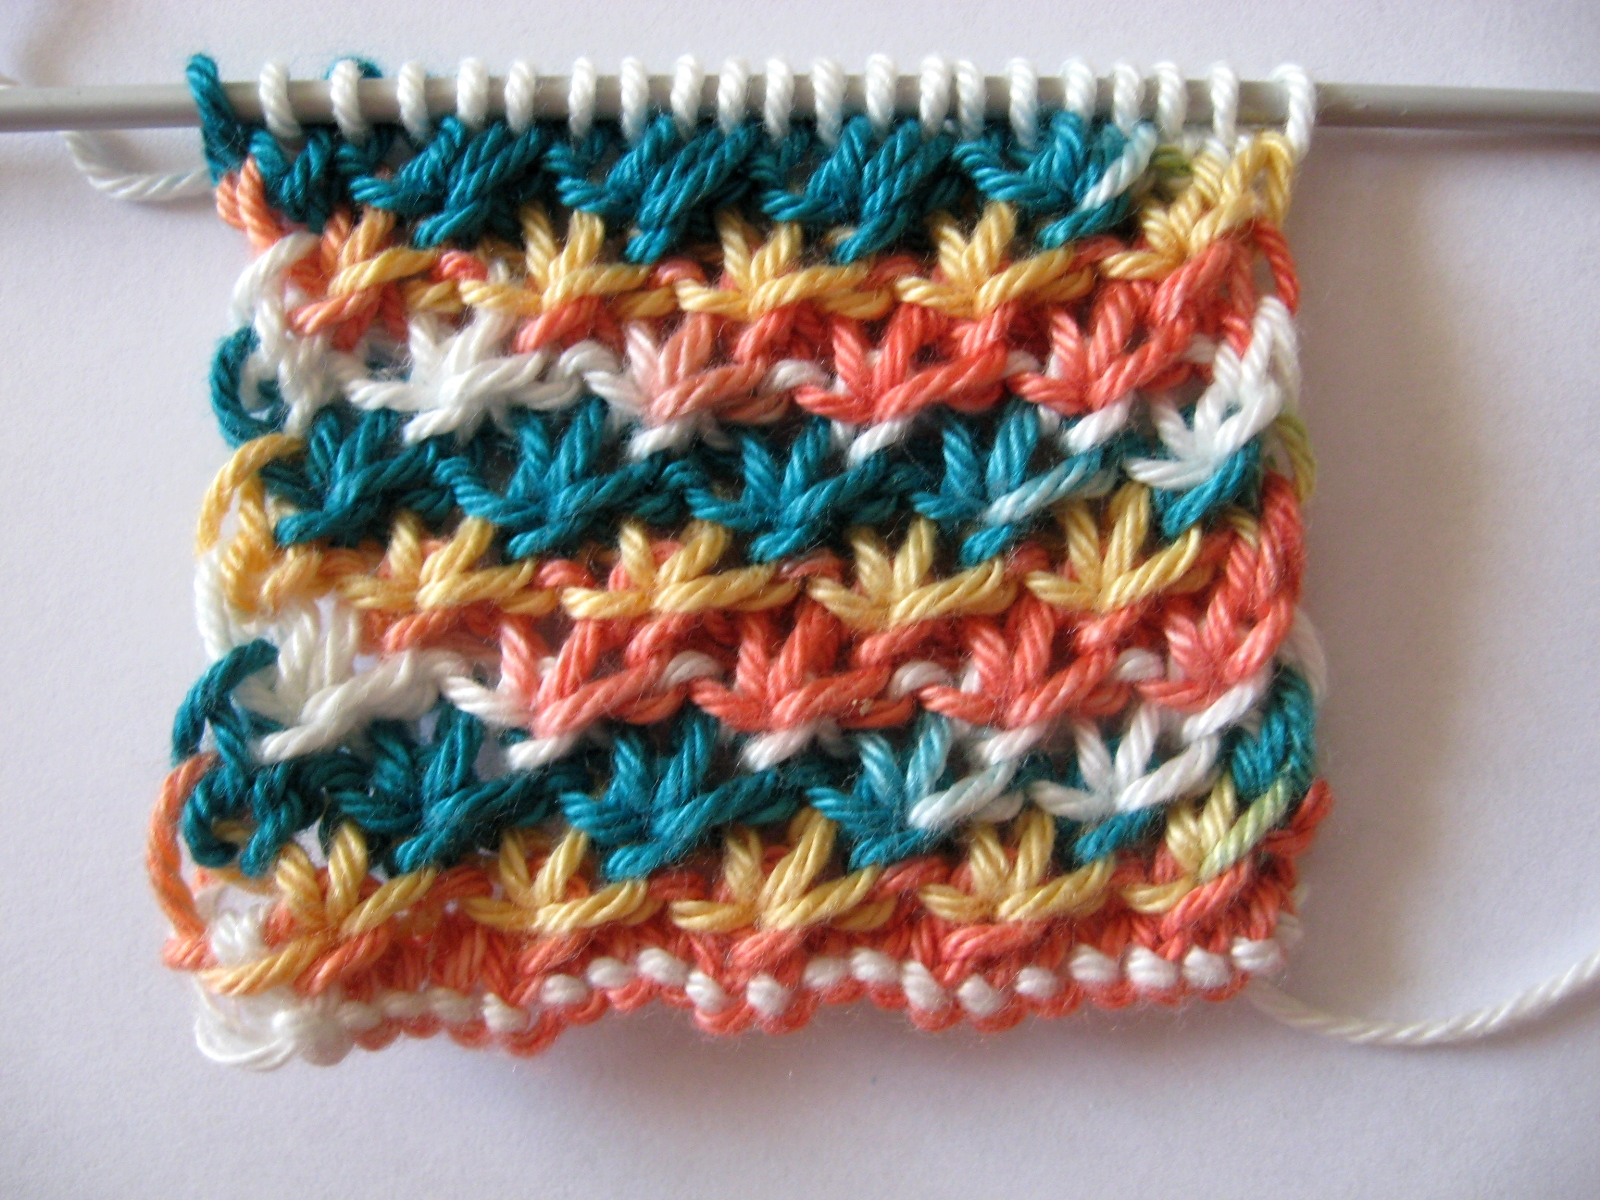 CROCHET ENCYCLOPEDIA KNITTING PATTERN STITCH Crochet Patterns